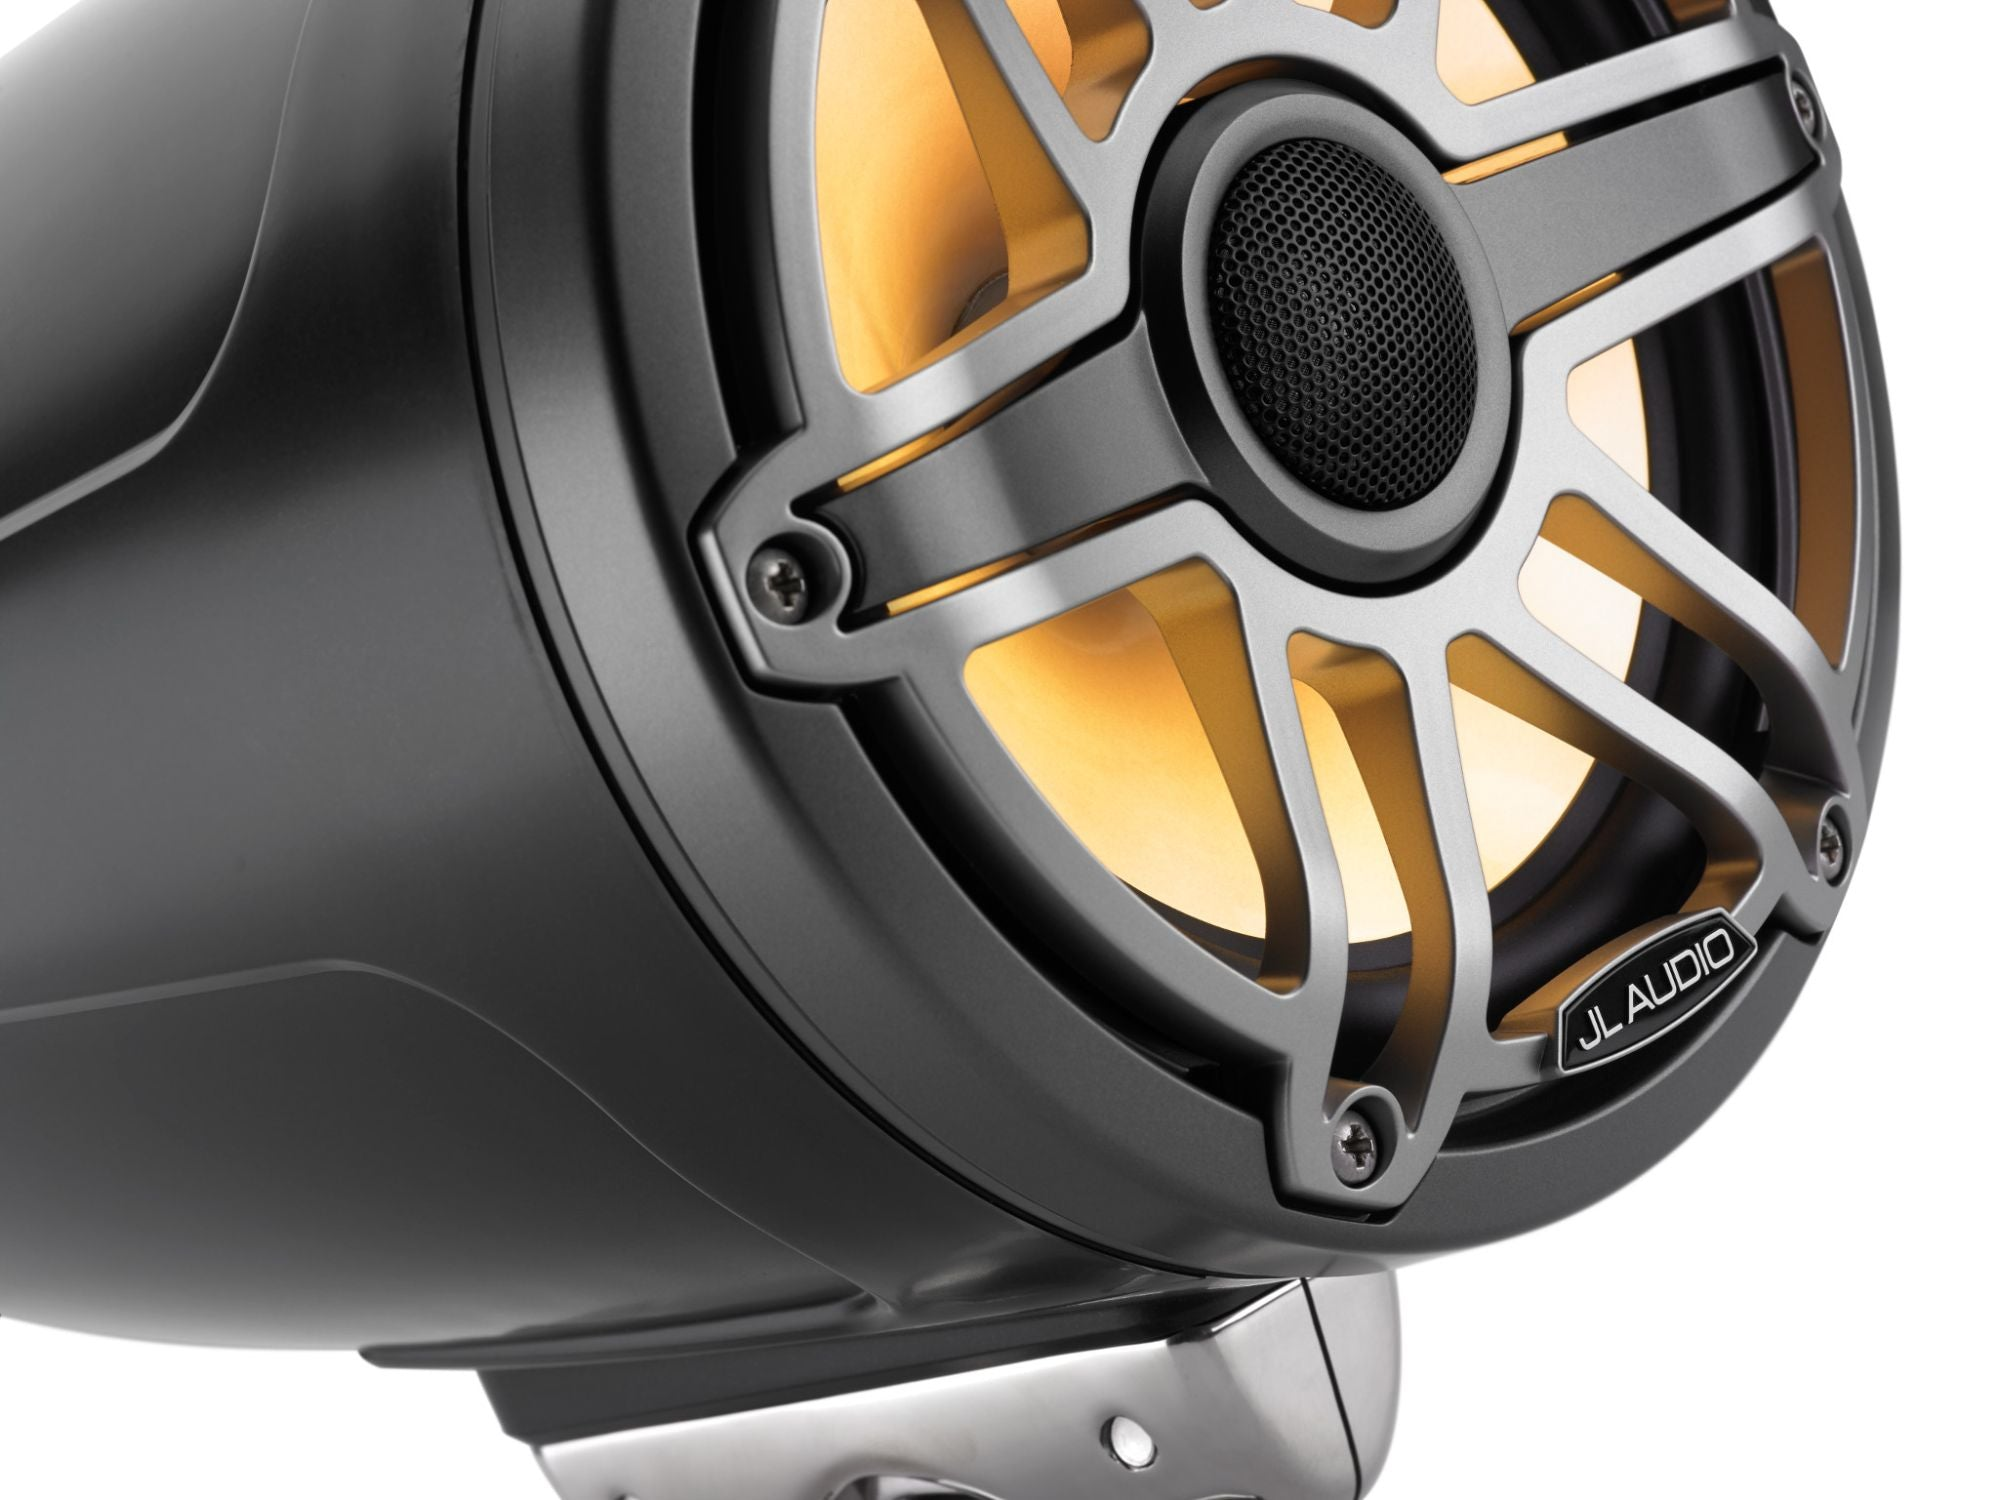 Detail of M6-770ETXv3-Sb-S-GmTi-i Enclosed Speaker Lit with Yellow